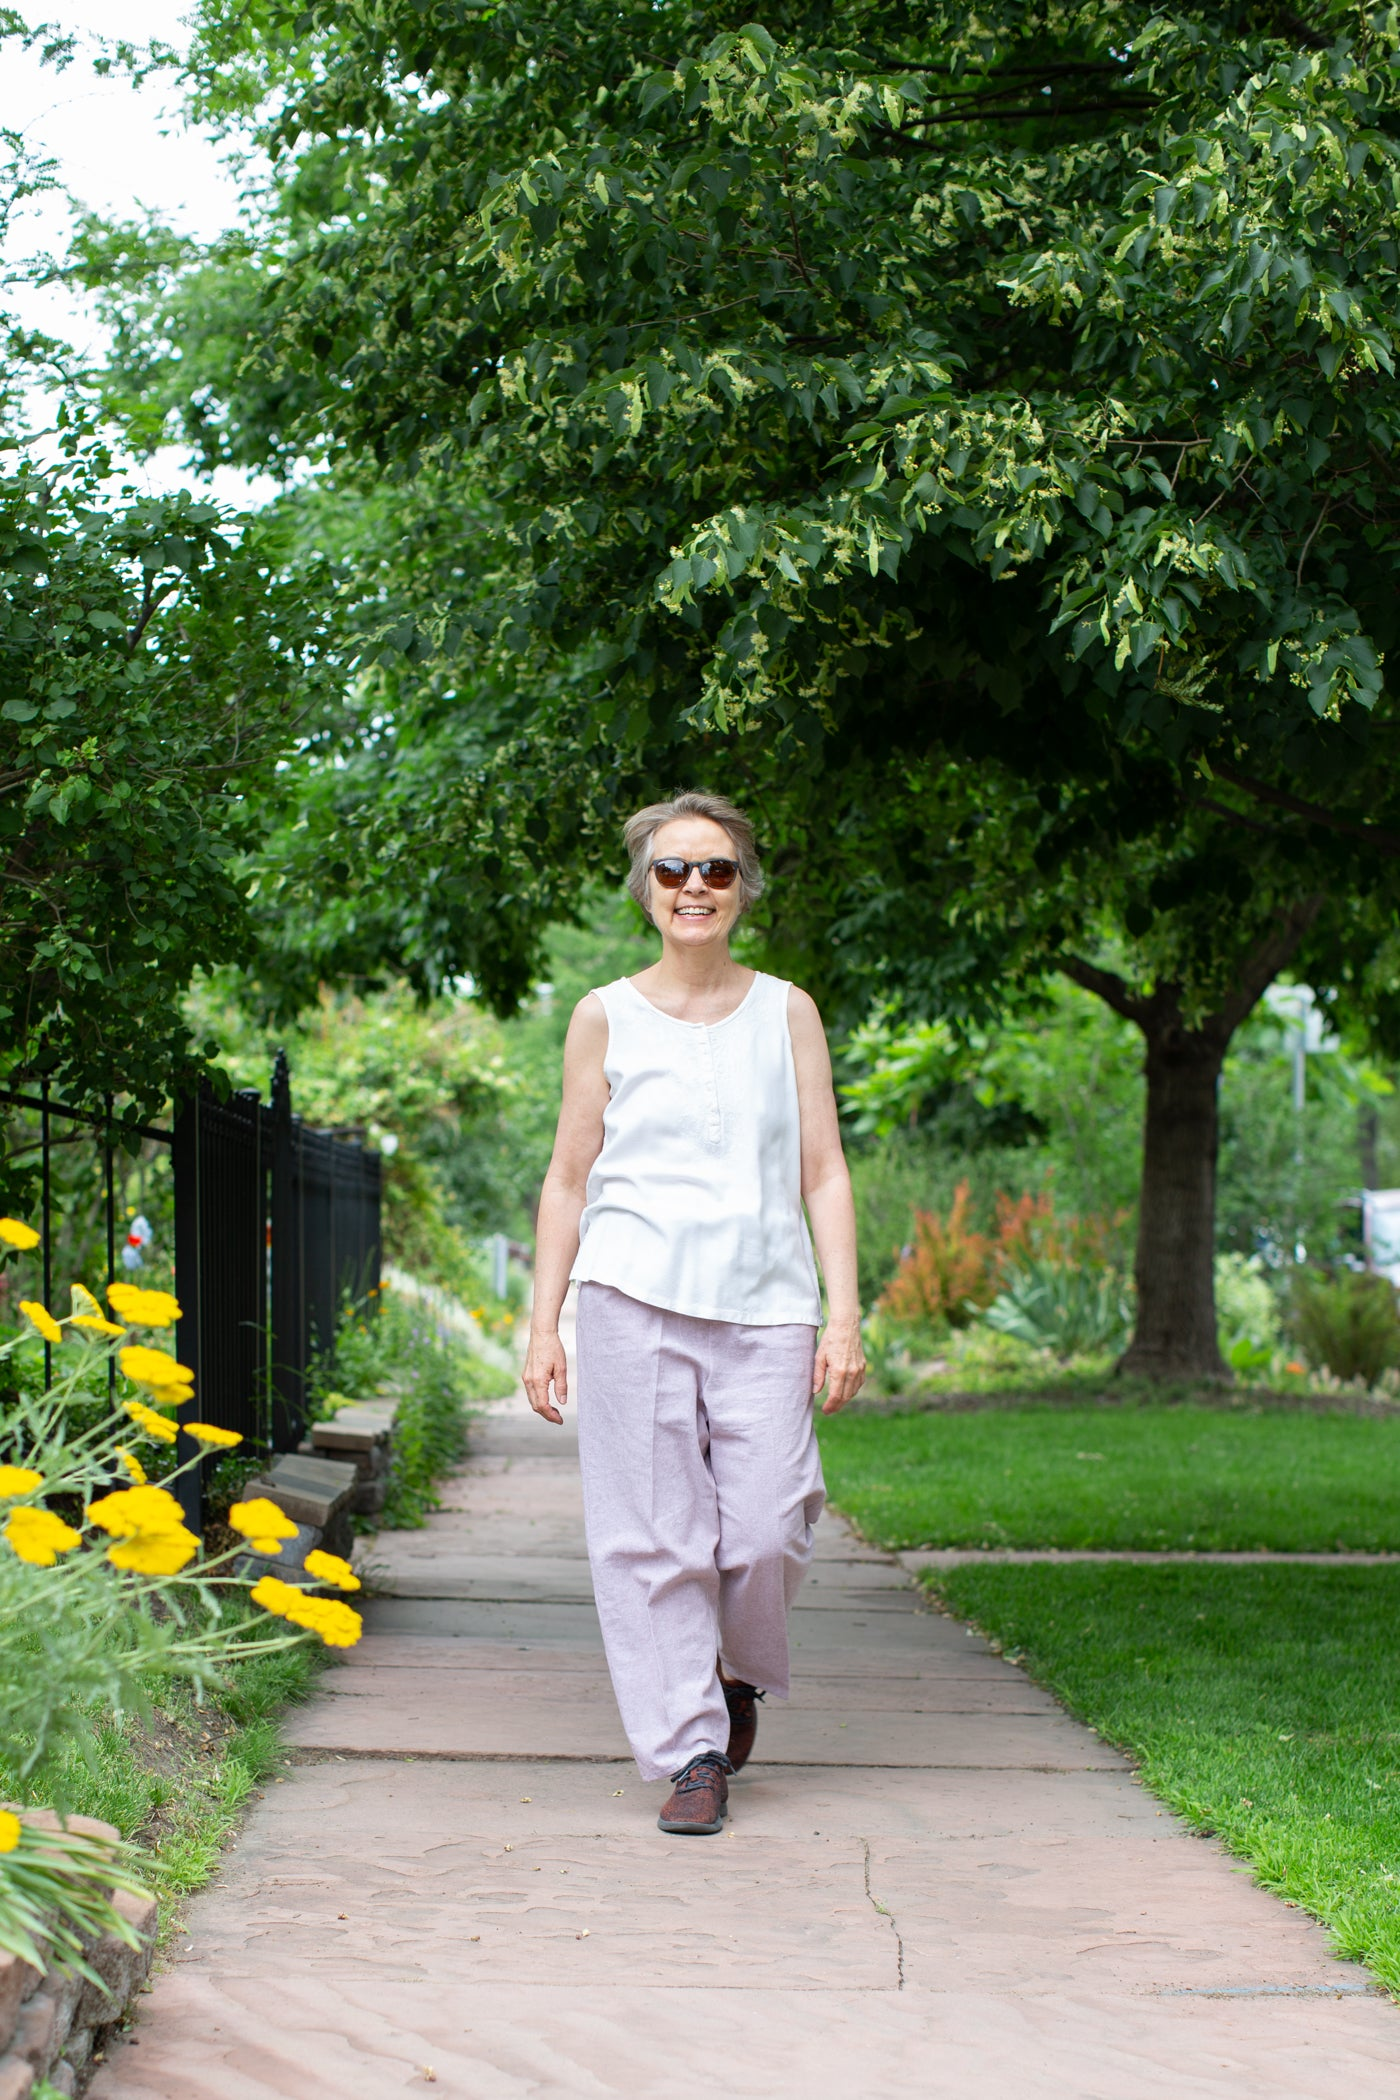 Women walking down the city sidewalk smiling, wearing sunglasses, white tank top and Mocha colored pants.